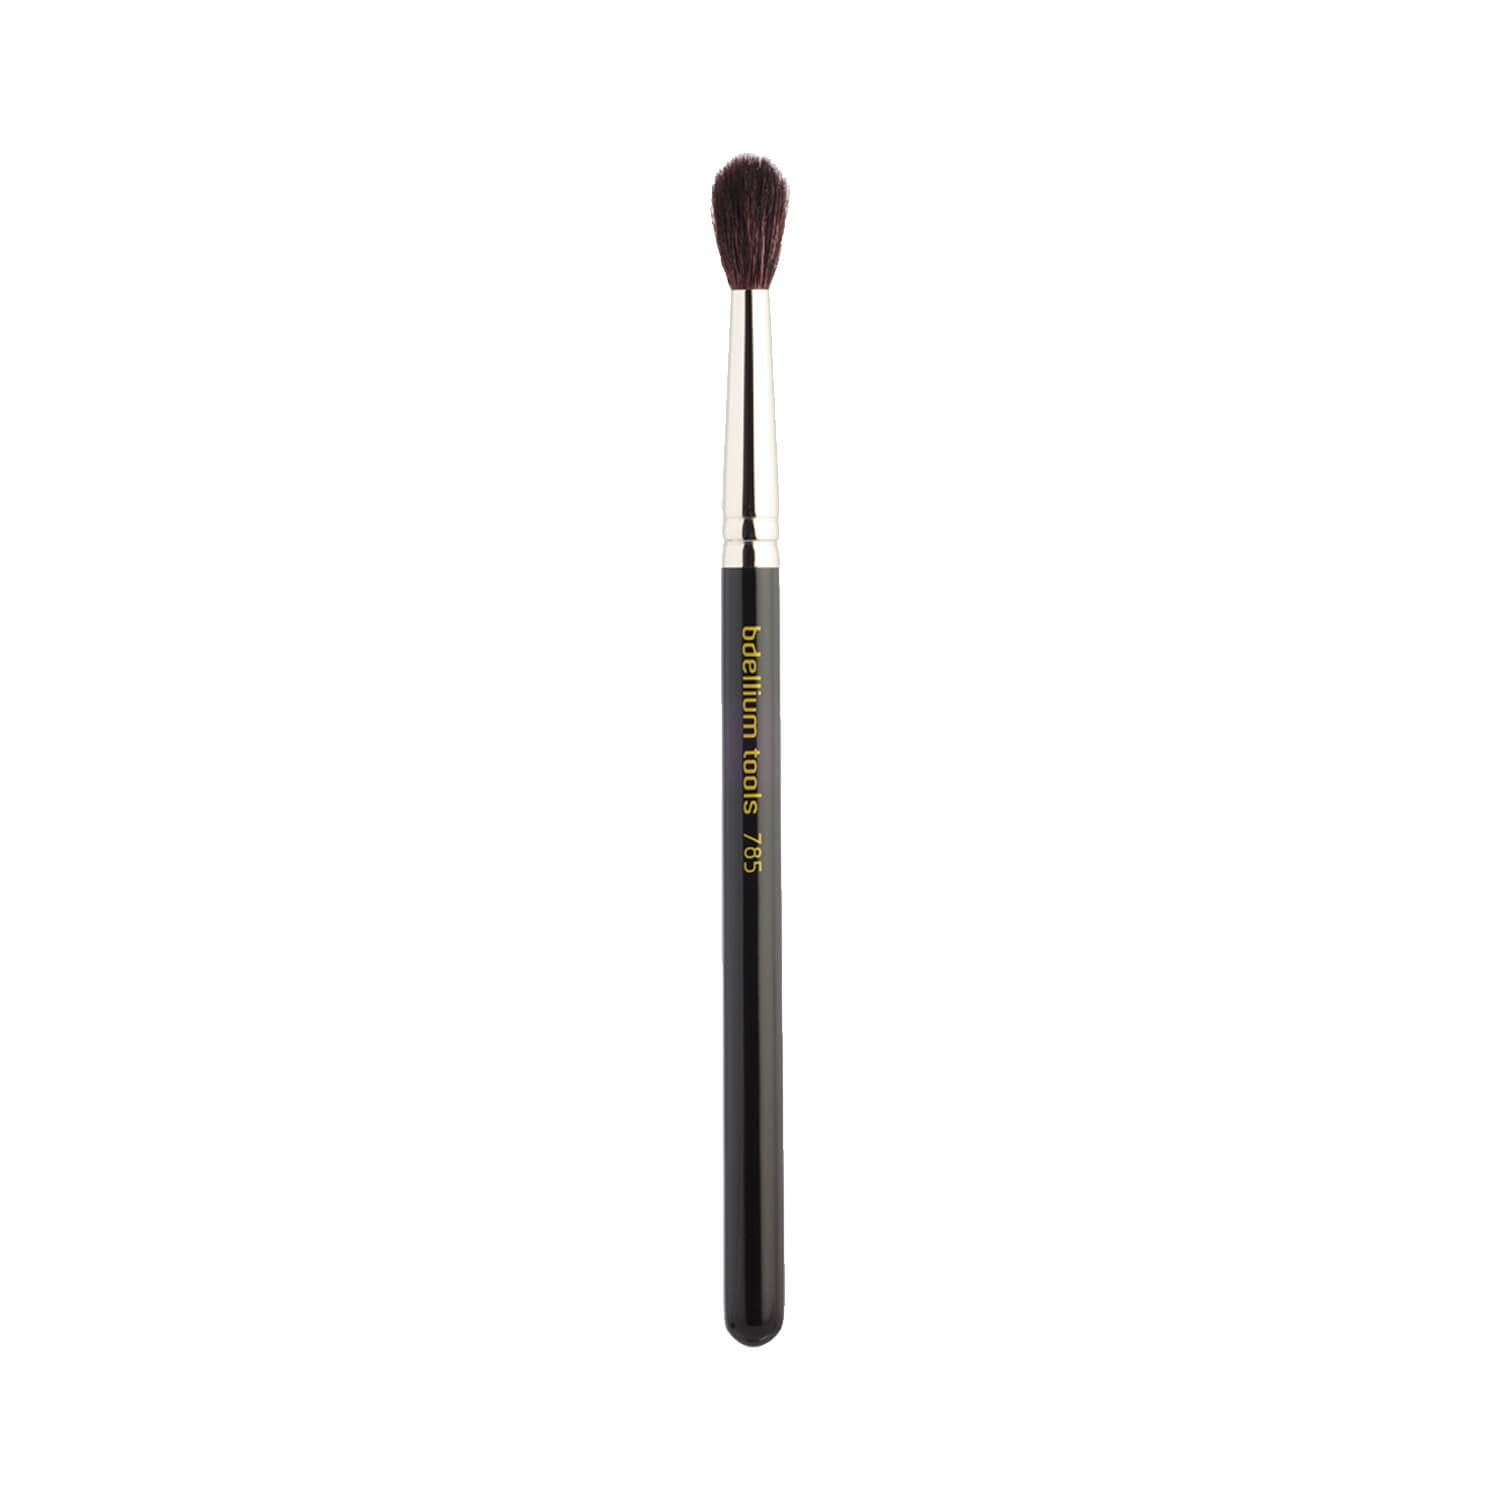 BDellium Tools Maestro Line 785 Tapered Blending Brush Black